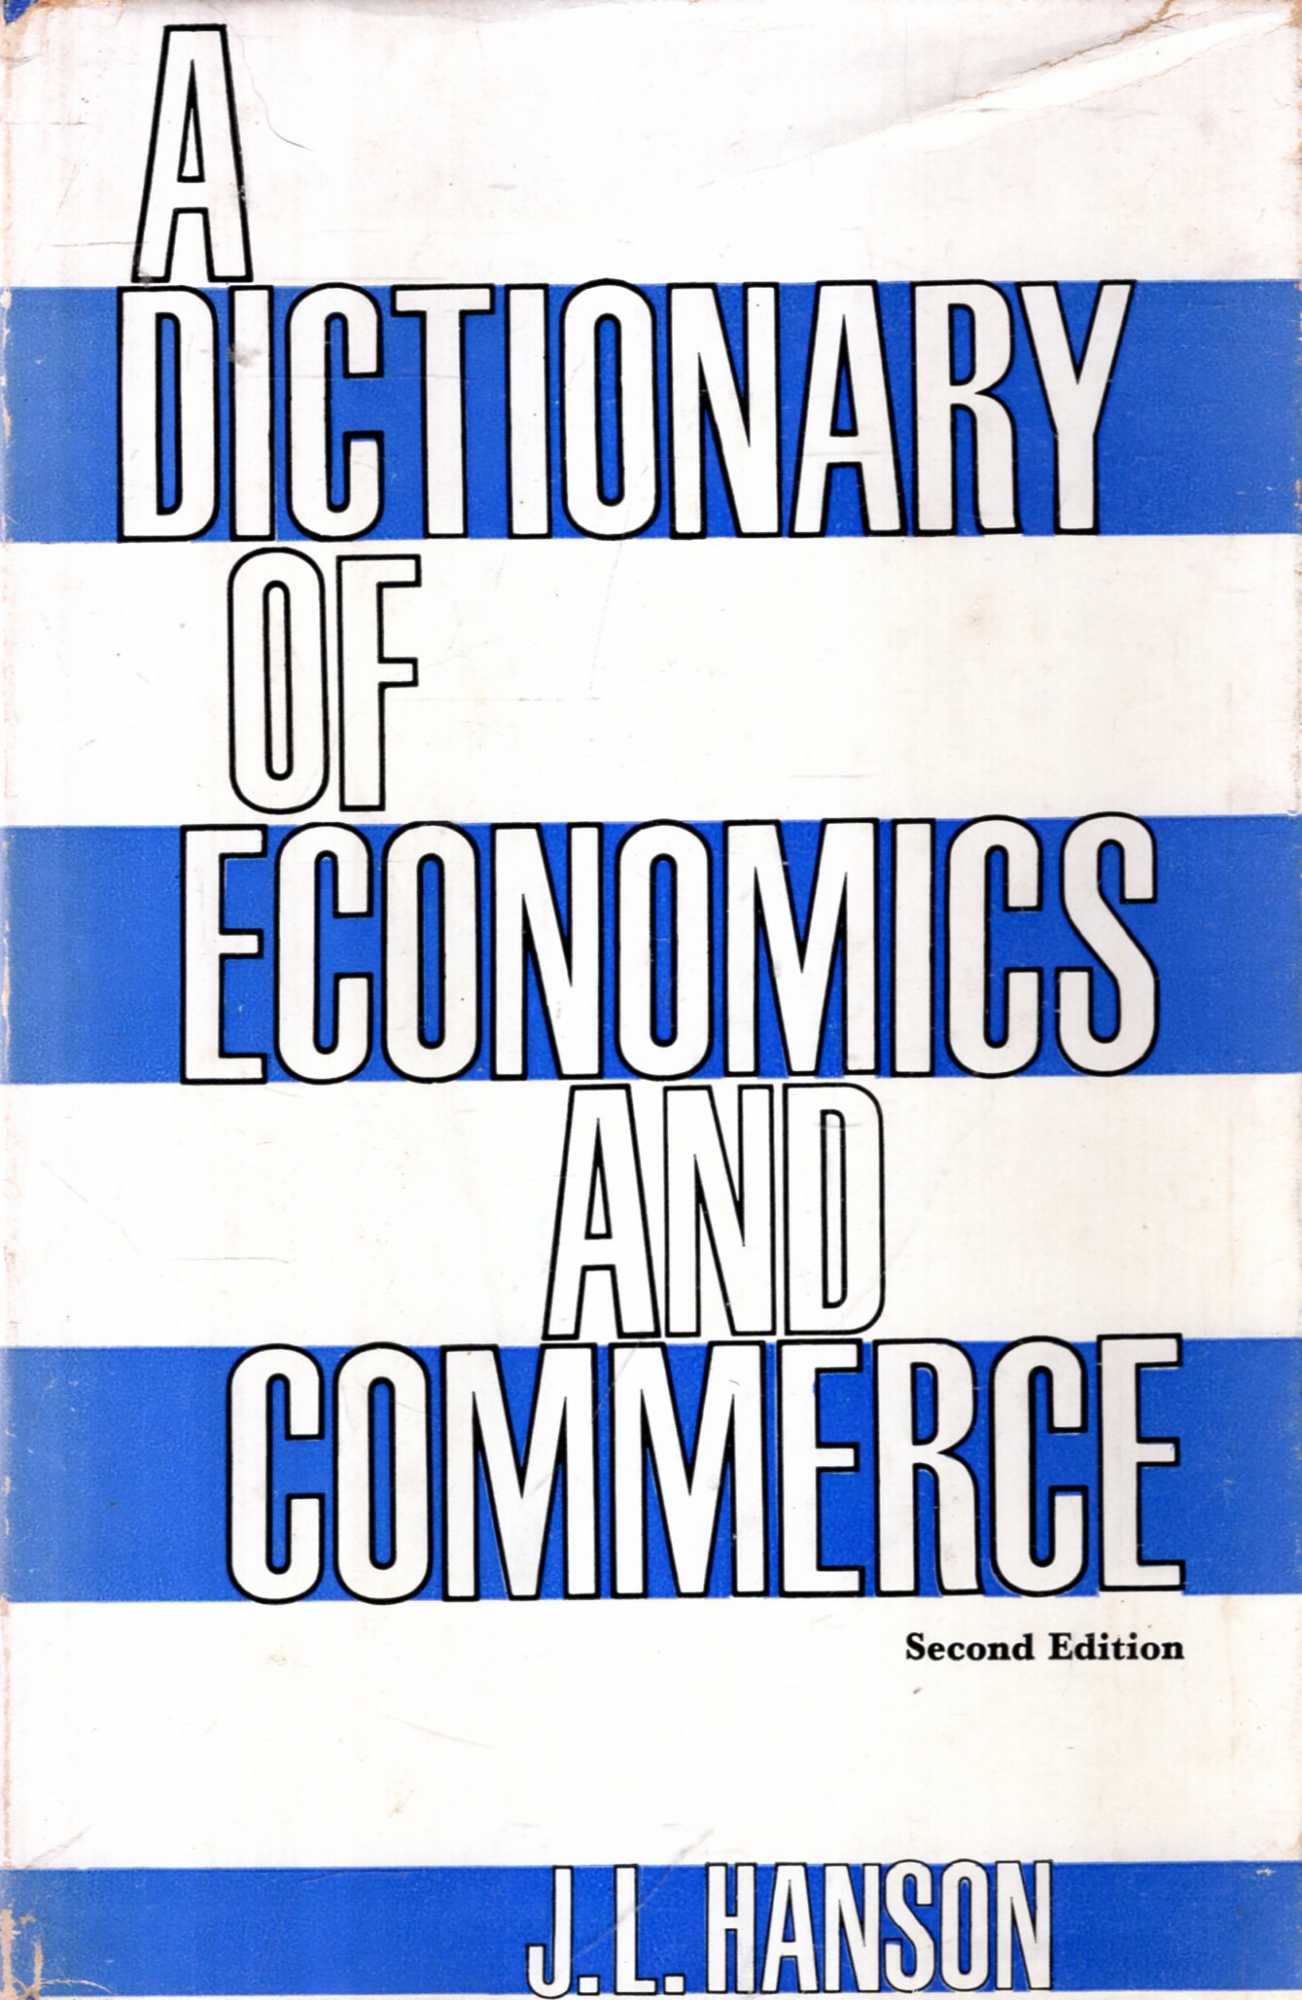 Image for A Dictionary of Economics and Commerce